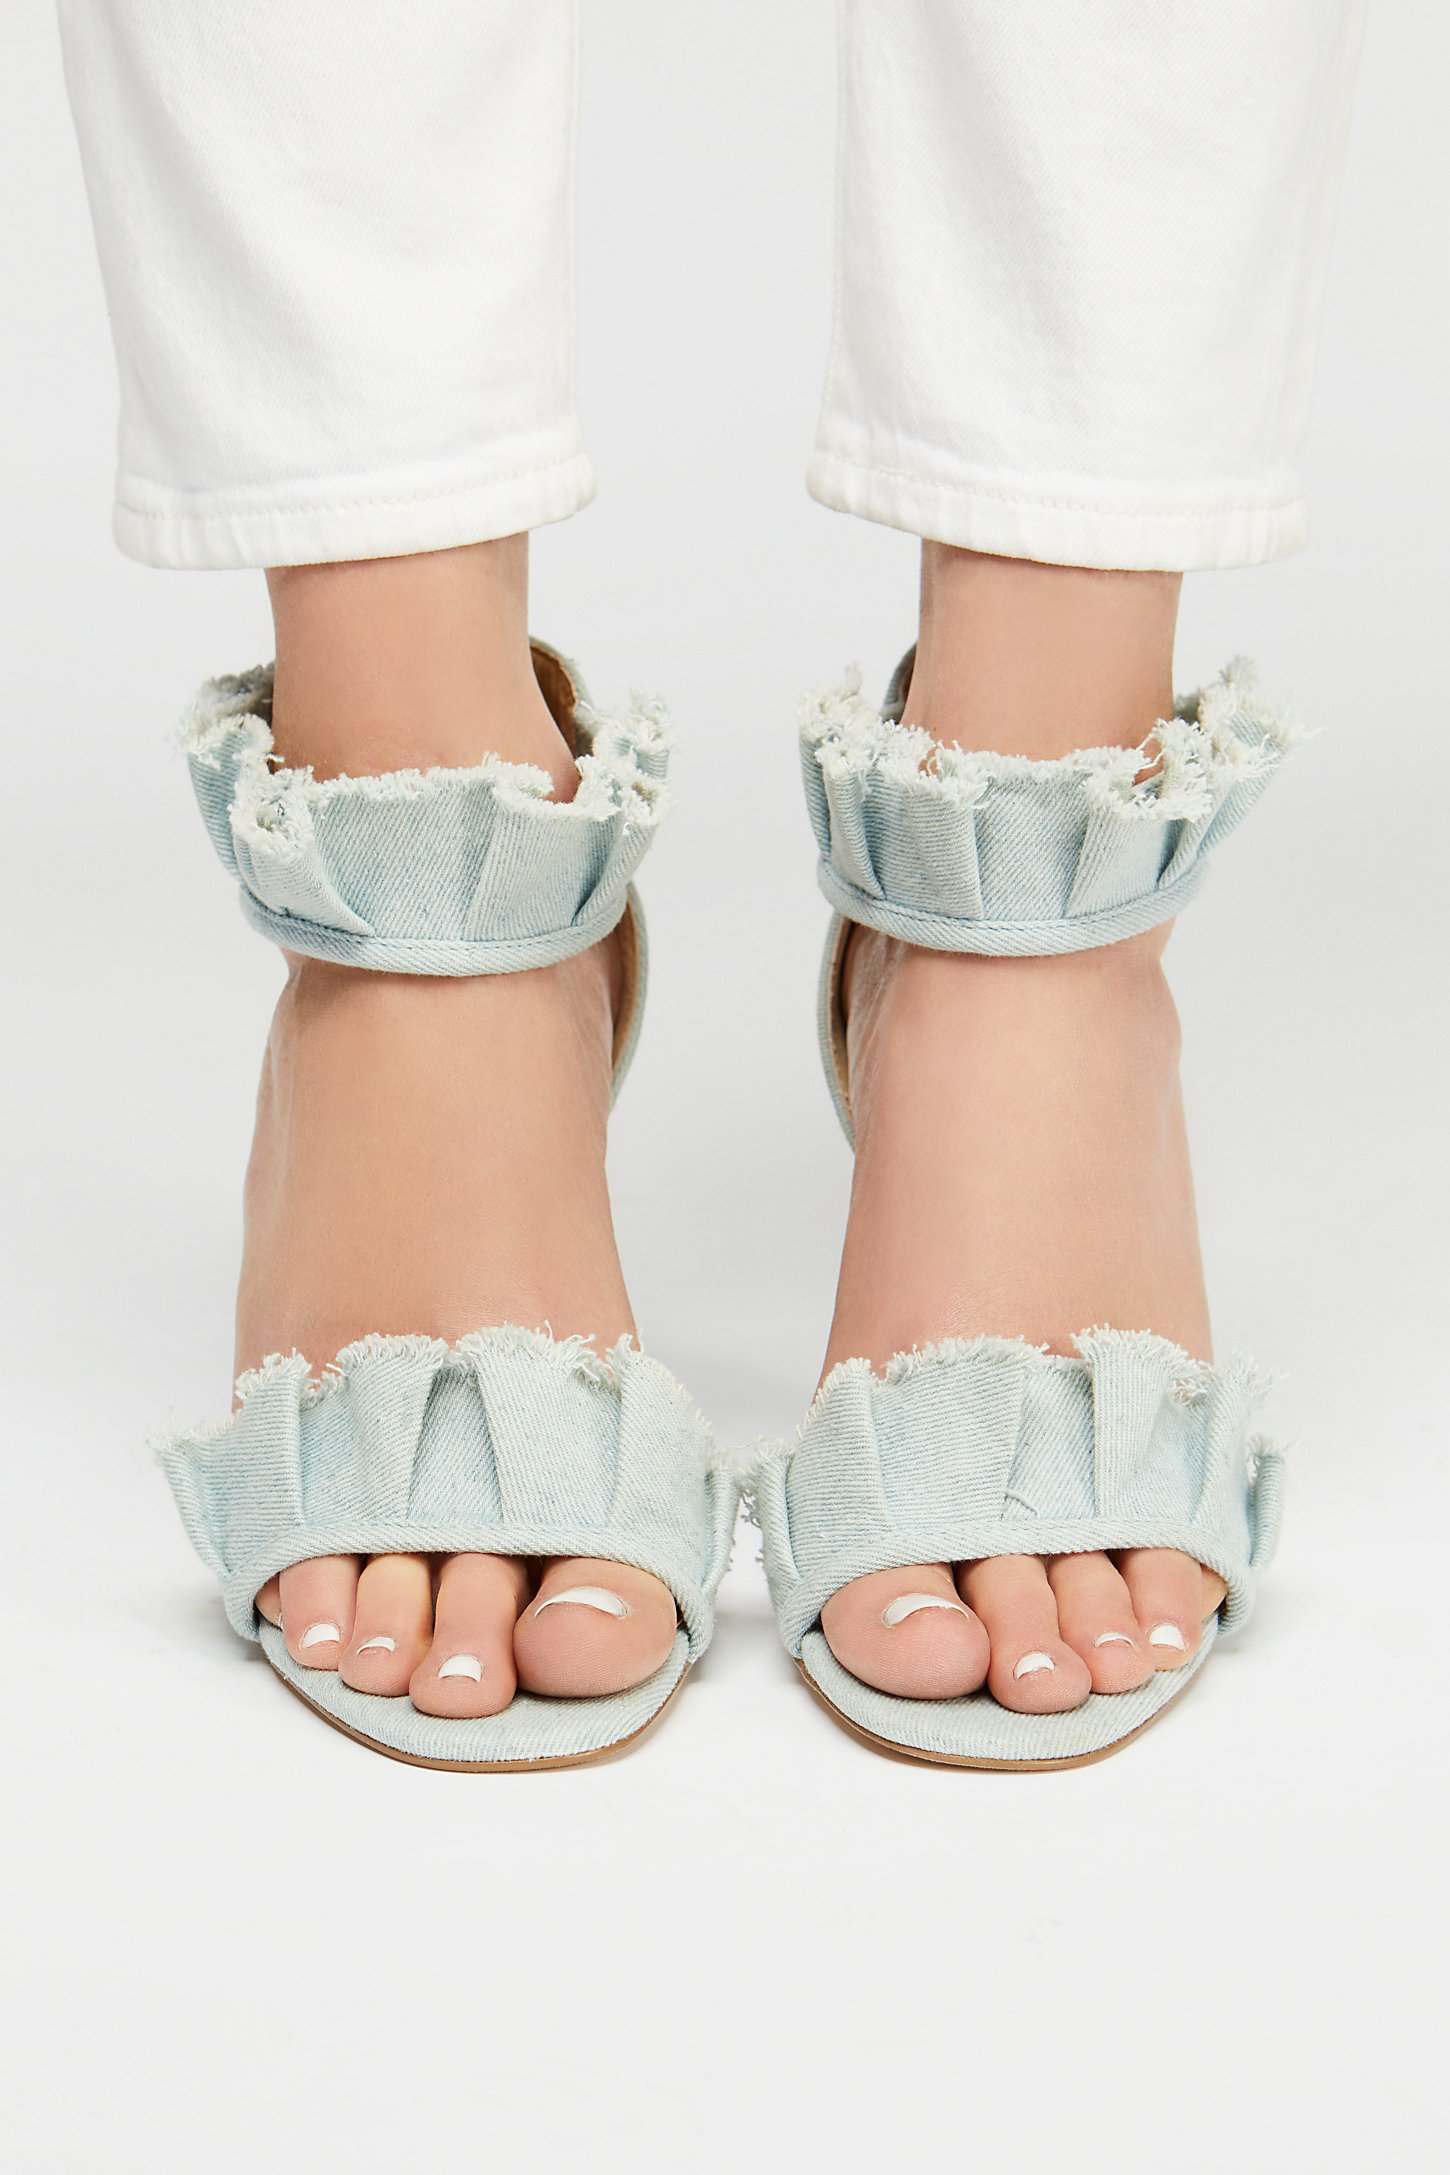 LOVE these ruffled denim heels